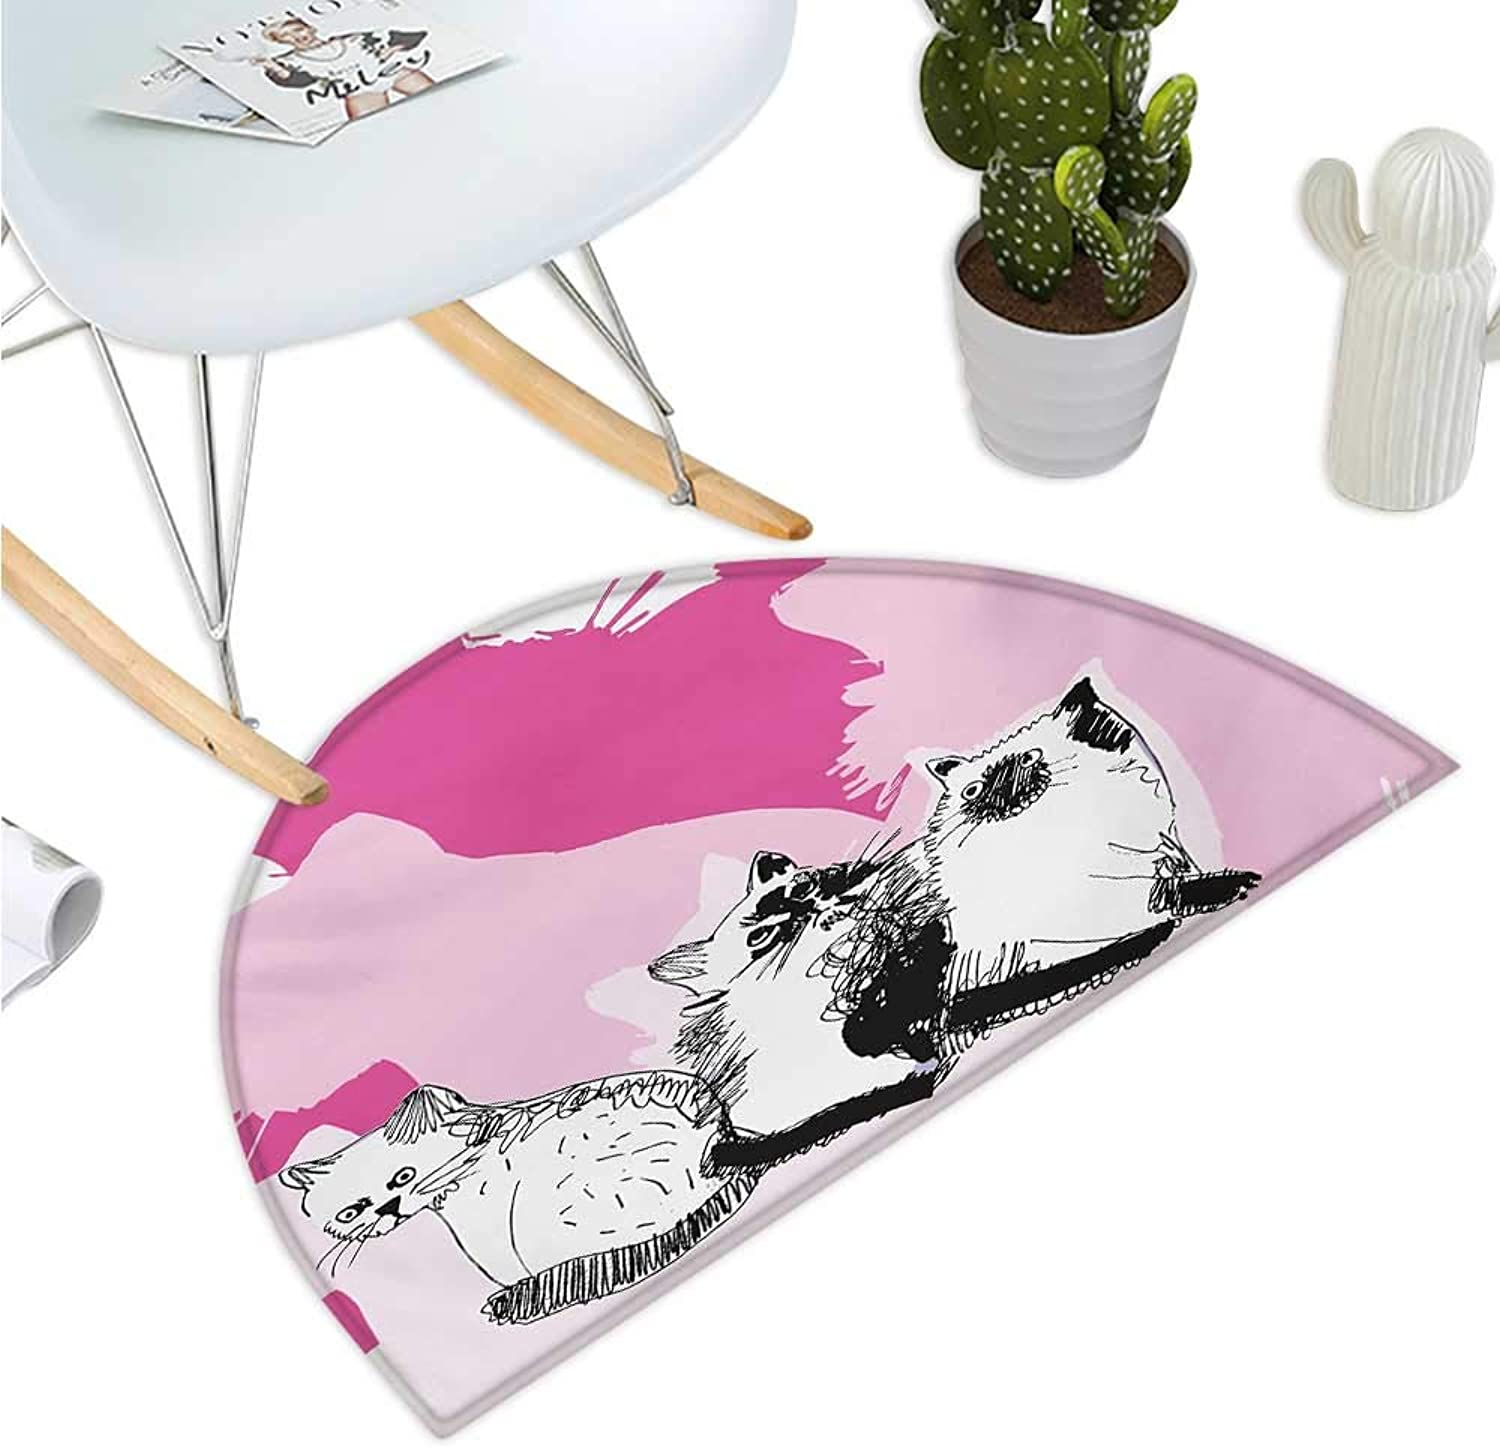 Animal Semicircle Doormat Baby Cute Cats Kittens with Shadow Sketchy Image Artwork Halfmoon doormats H 39.3  xD 59  Black White Pale Pink and Hot Pink